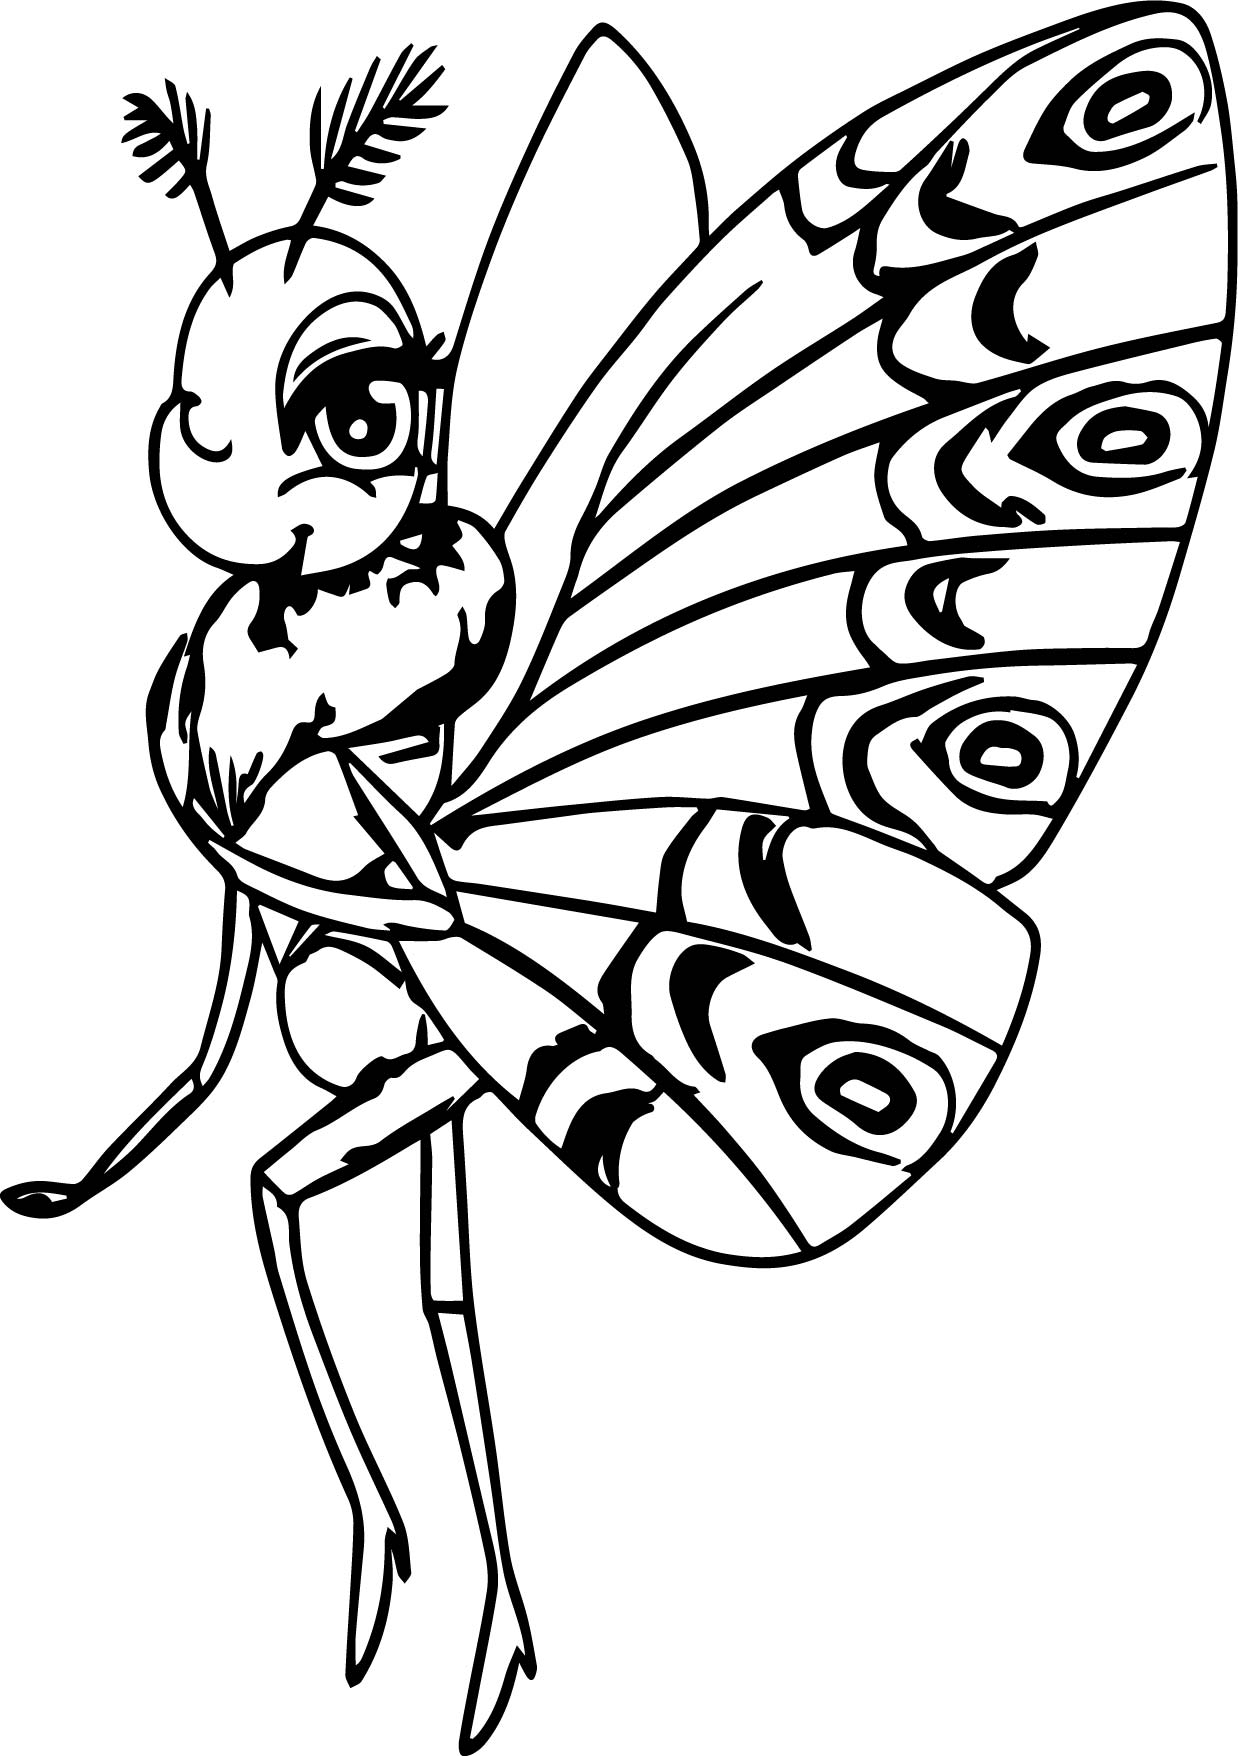 Colouring in pages for girls butterflies - A Bugs Life Girl Butterfly Coloring Page